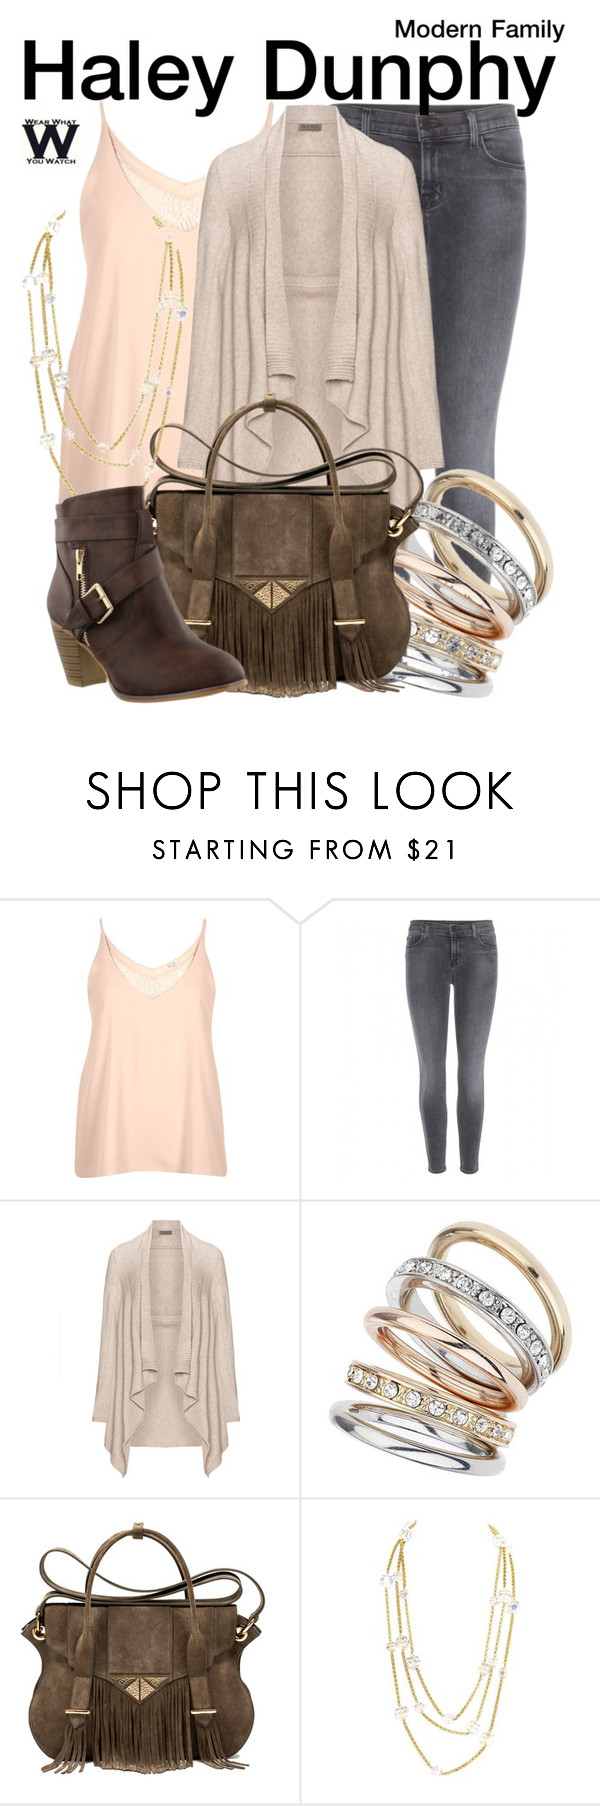 """""""Modern Family"""" by wearwhatyouwatch ❤ liked on Polyvore featuring River Island, J Brand, Open End, Wallis, Ella Rabener, Chanel, modern, women's clothing, women and female"""